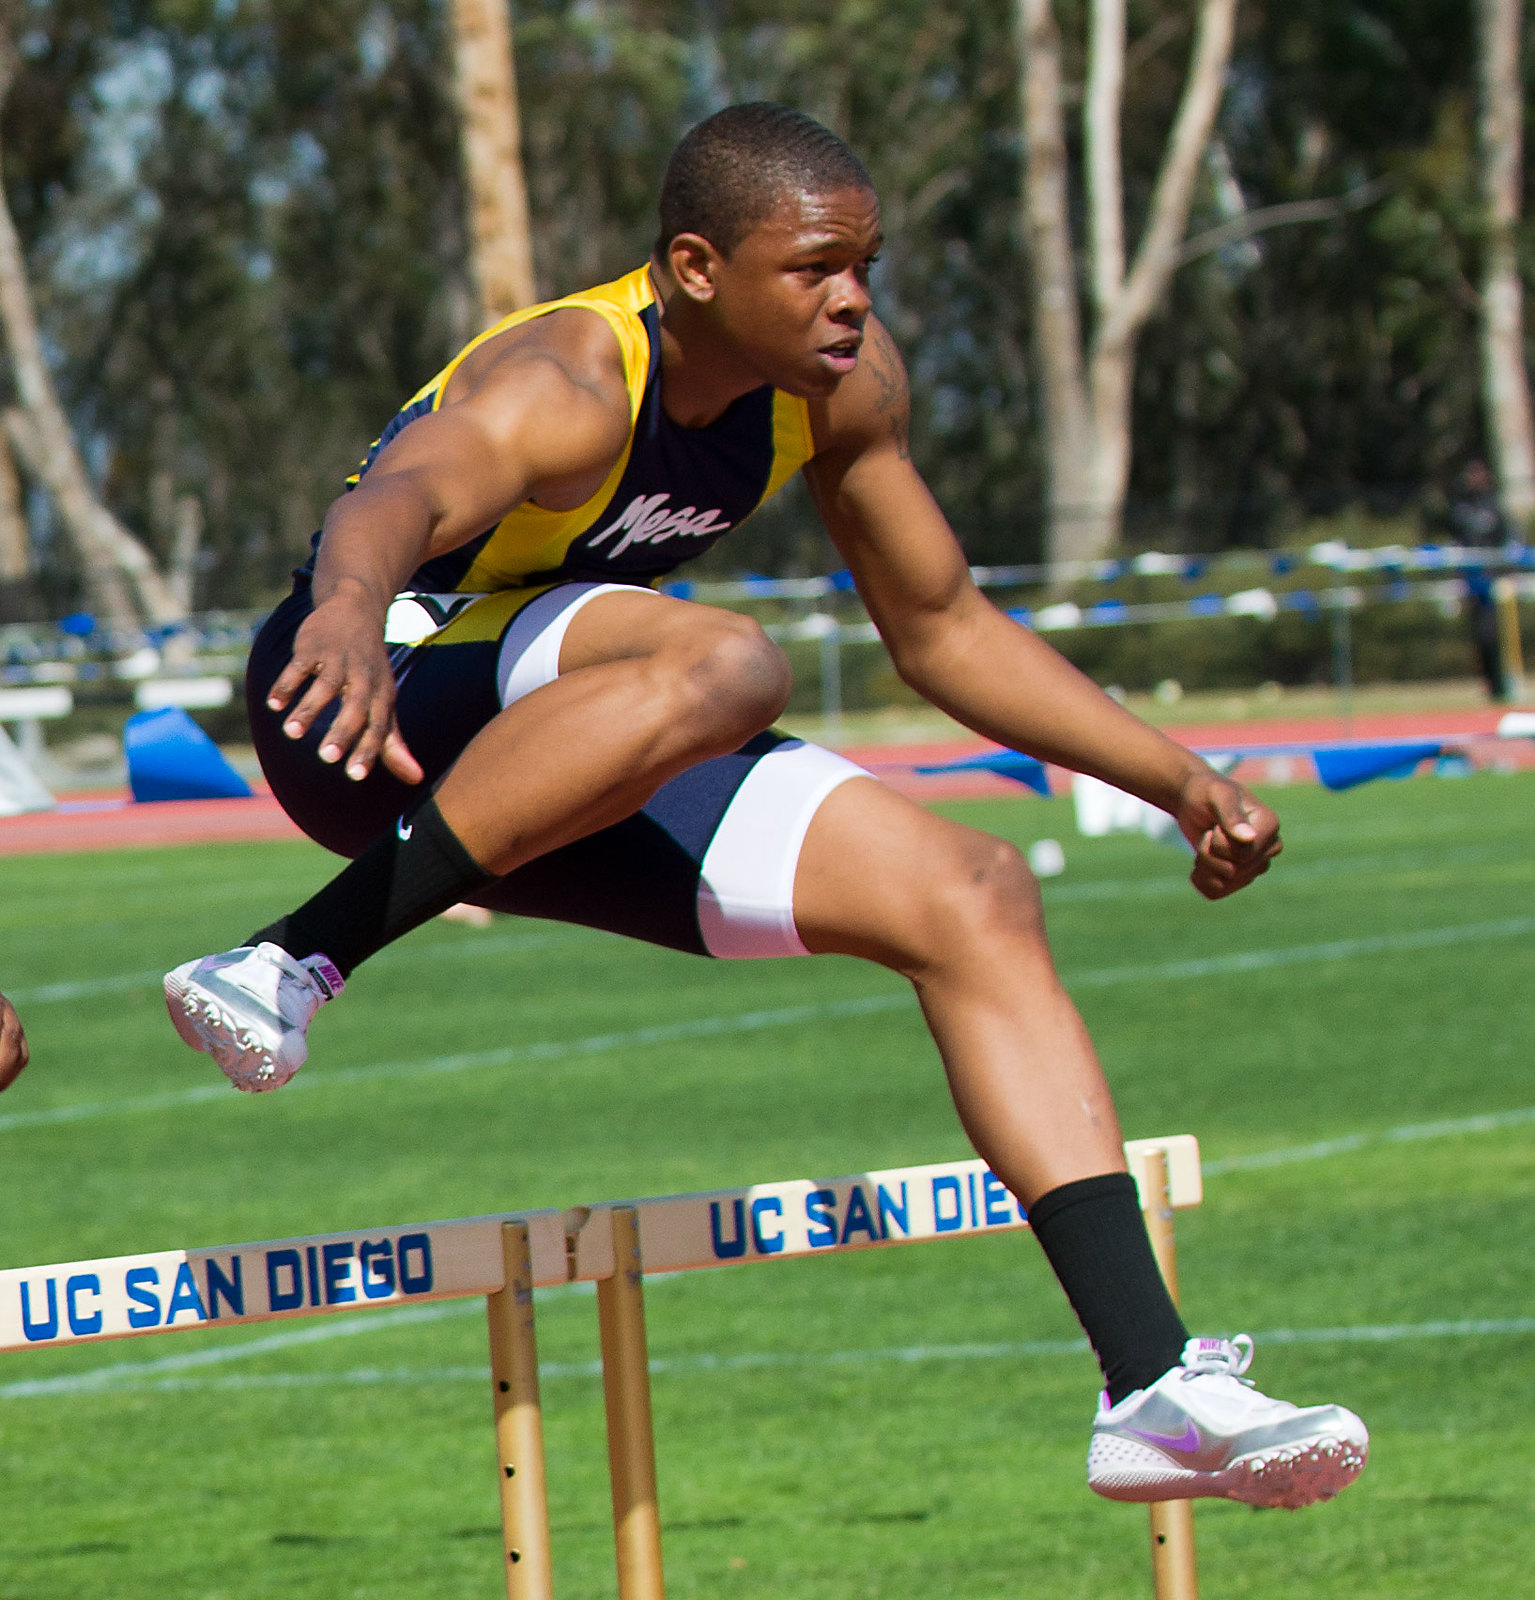 110 meter hurdle trtaining program Muscle essays and research papers | examplesessaytodaybiz  consider important in their own fitness program  110-meter hurdle trtaining program.